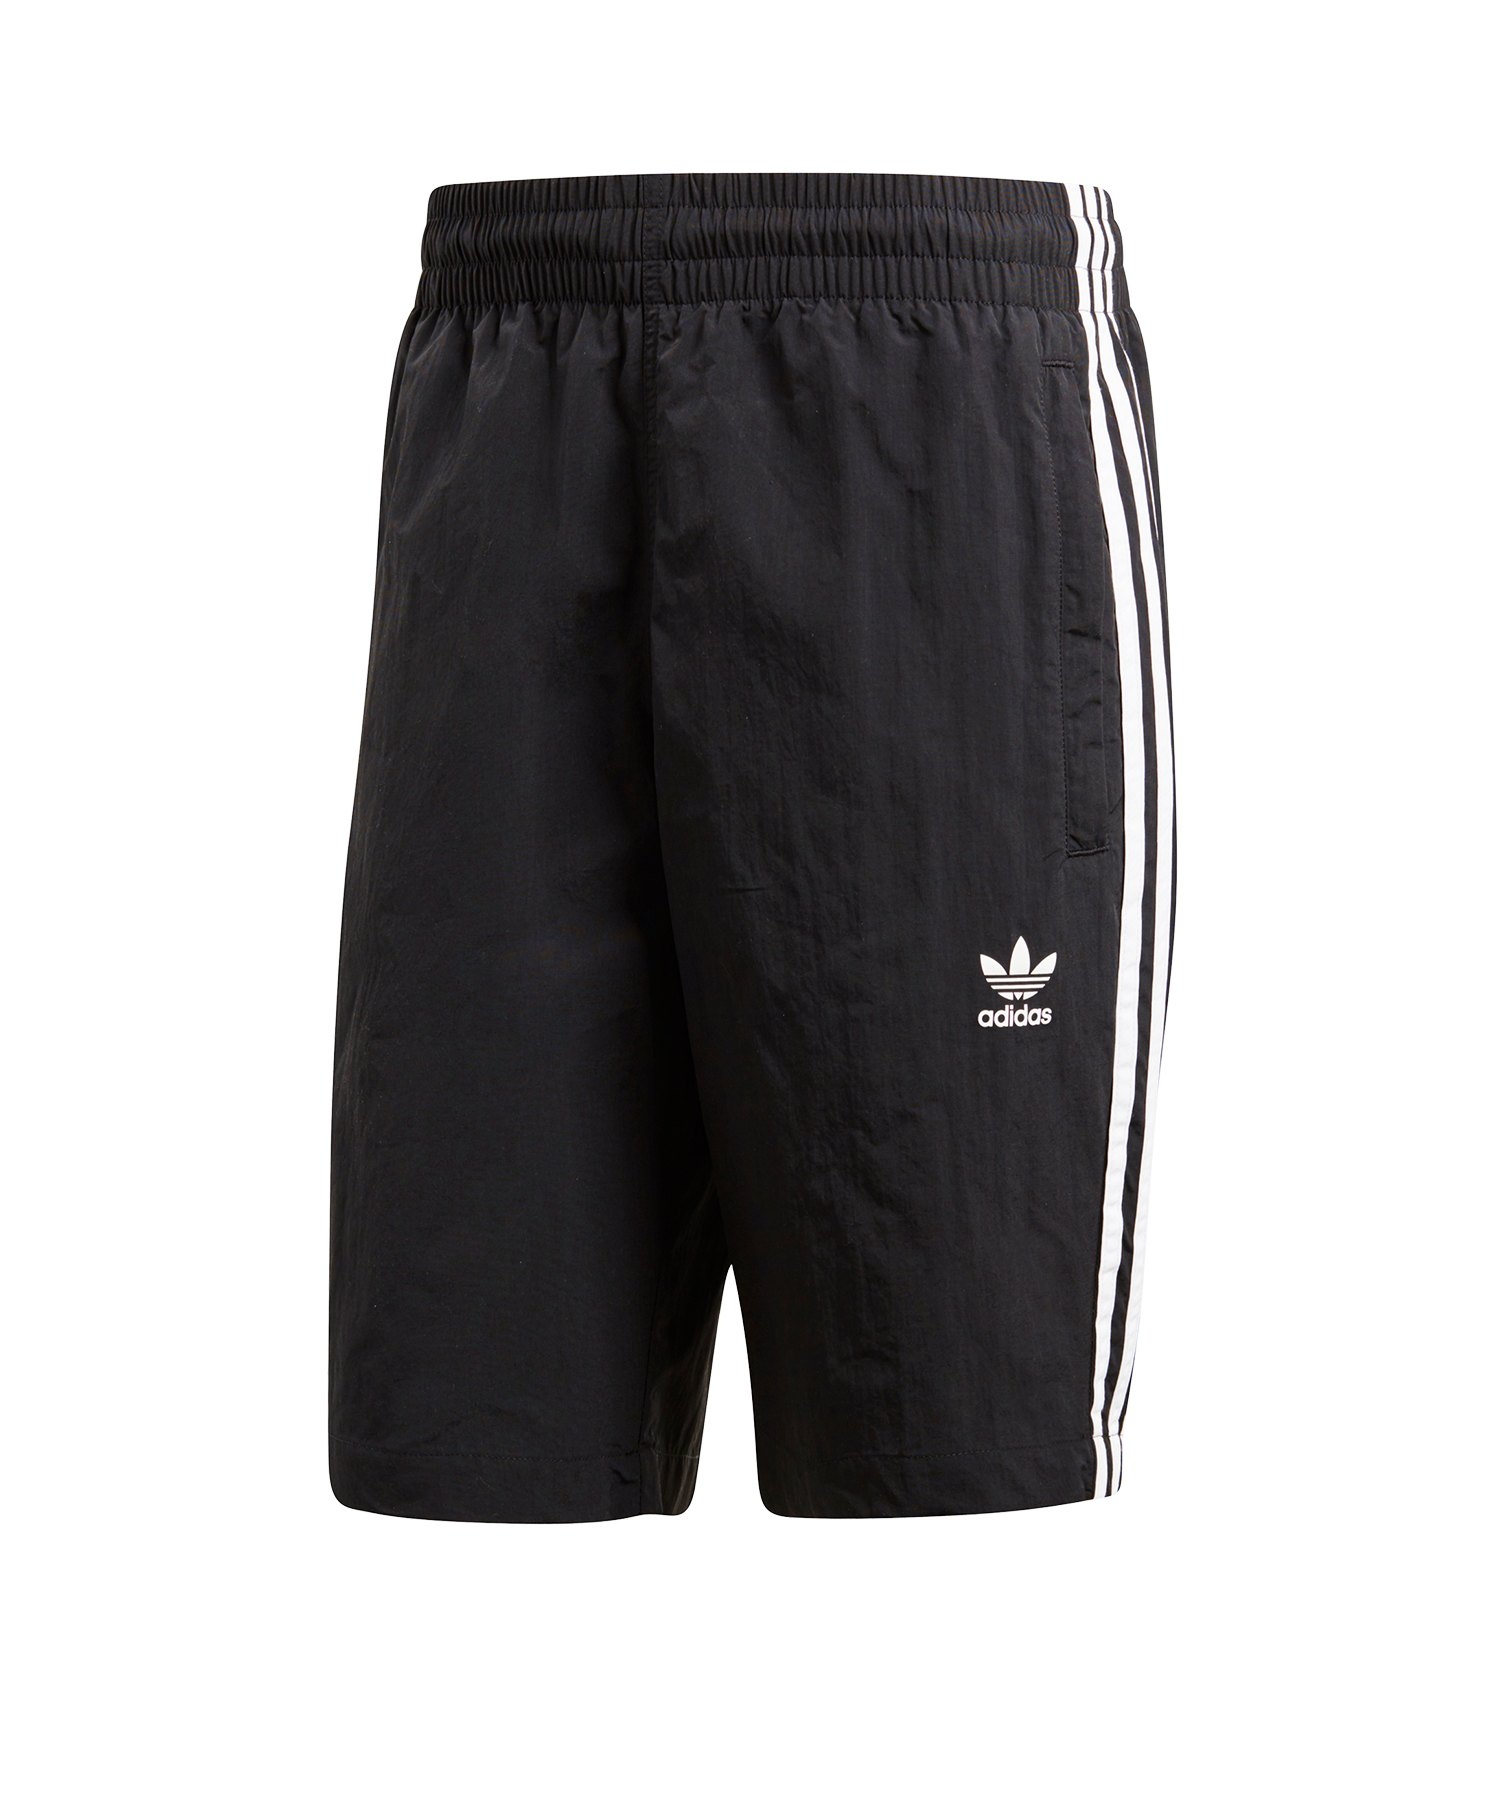 adidas Originals 3 Stripes Badehose Schwarz